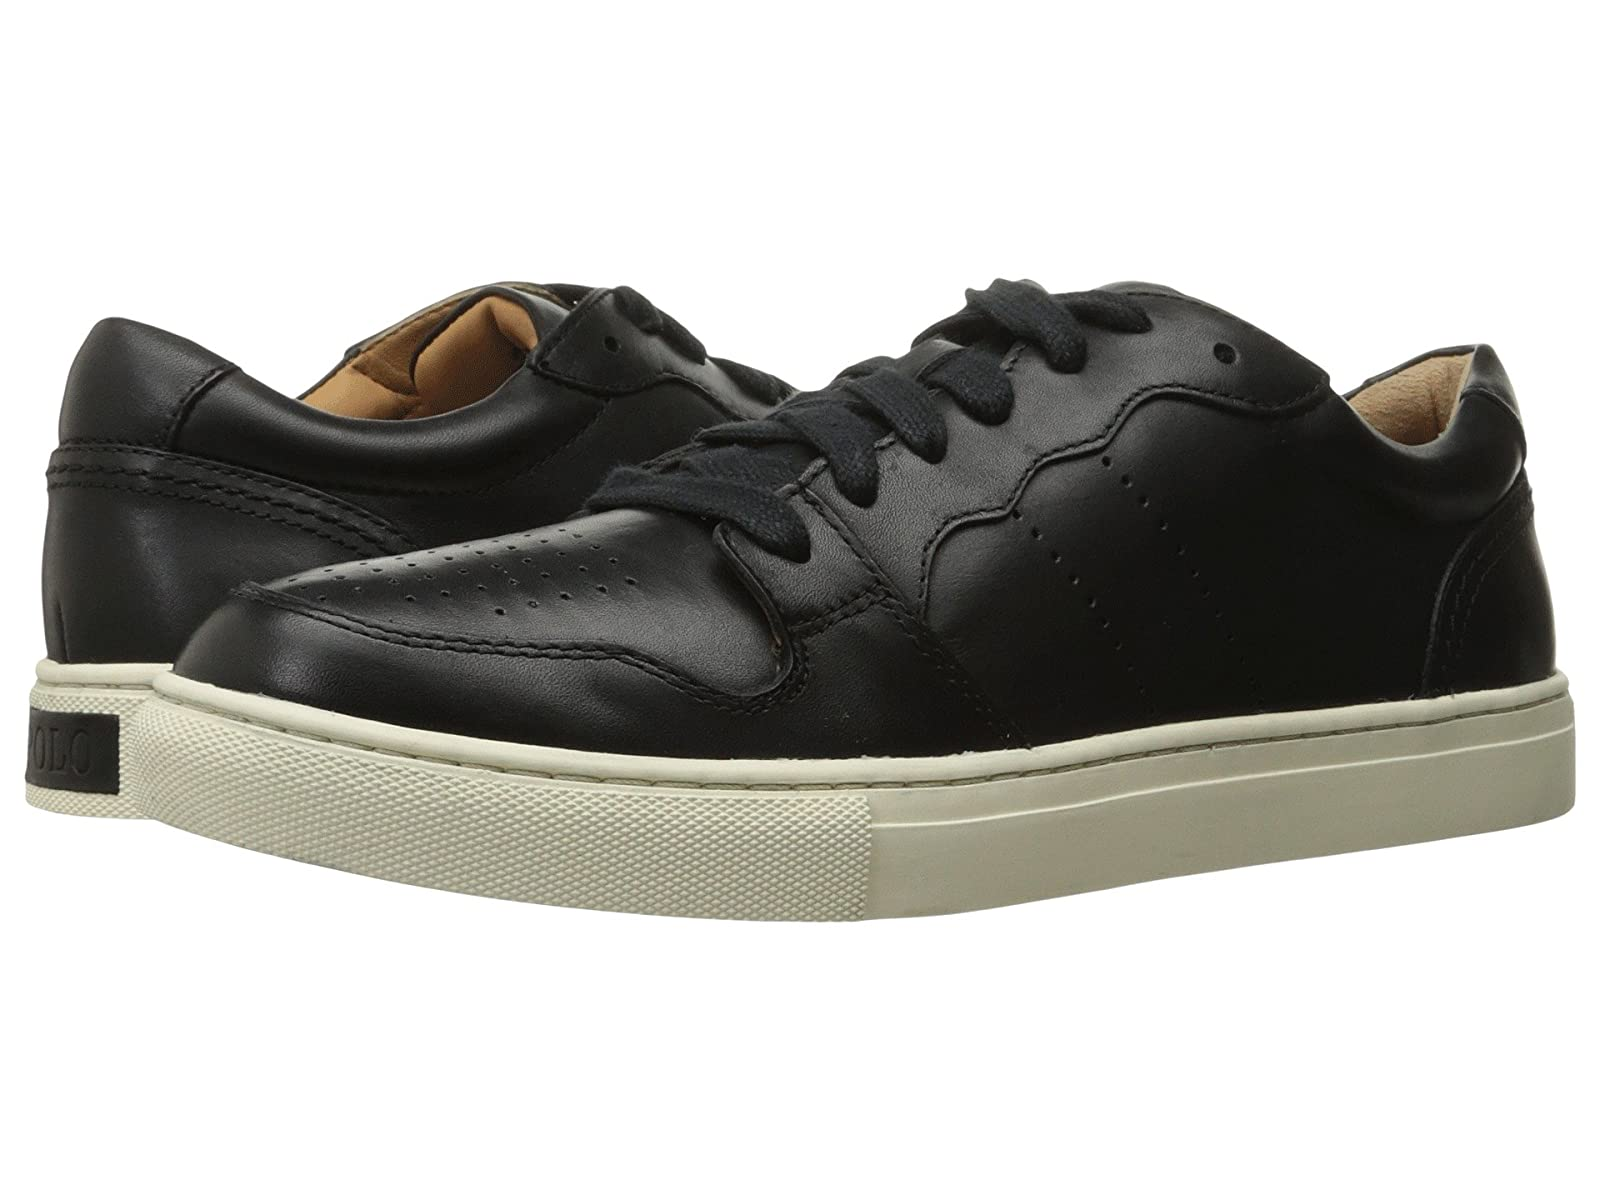 Polo Ralph Lauren JestonCheap and distinctive eye-catching shoes